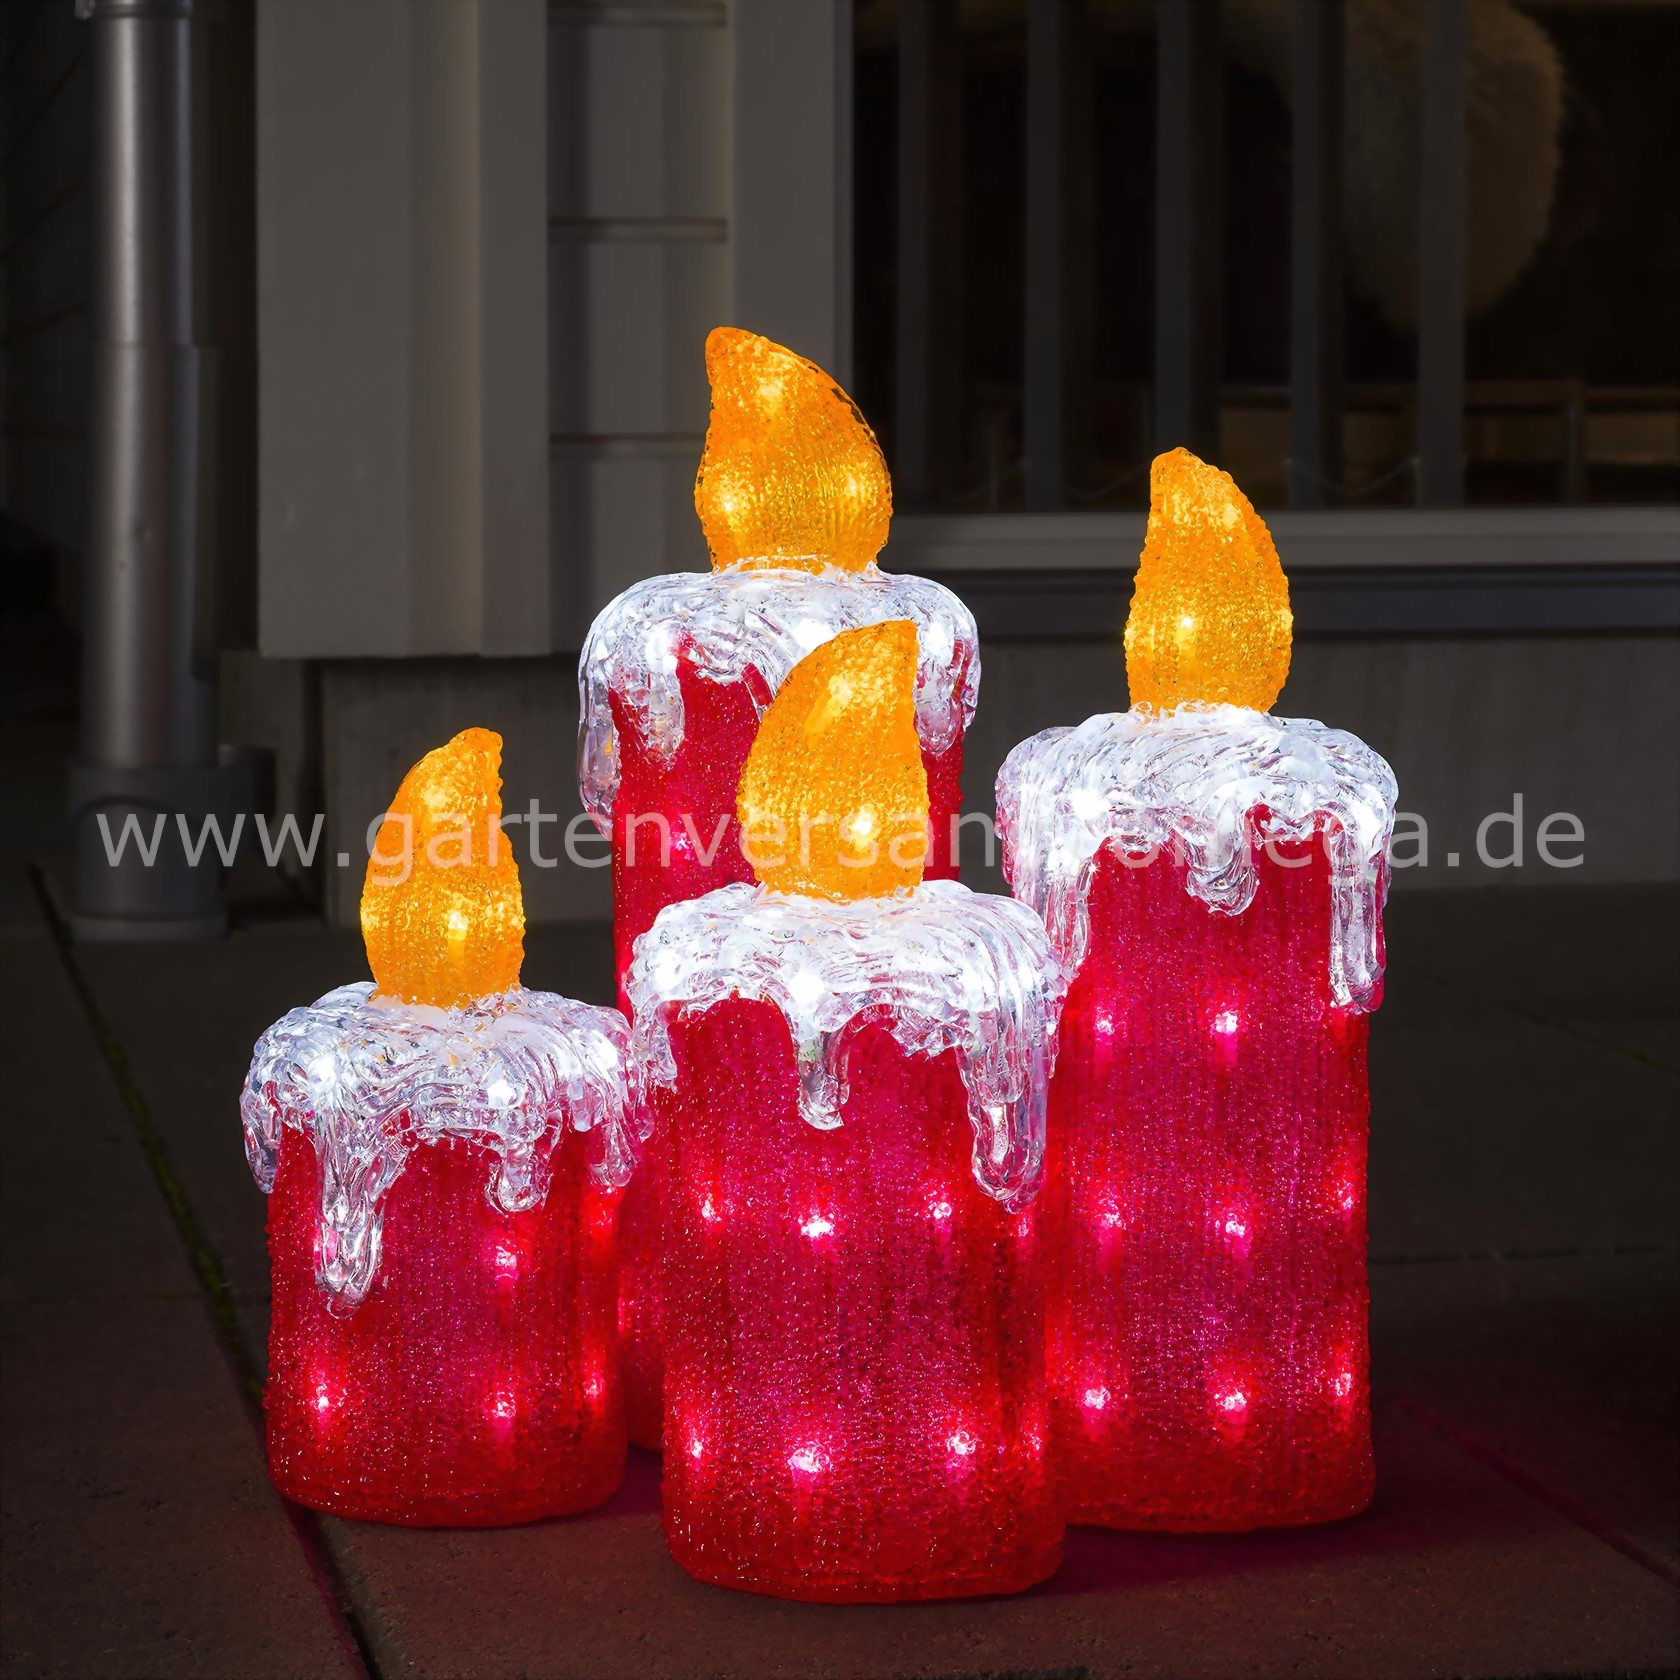 led acryl adventskerzen adventskerzen garten. Black Bedroom Furniture Sets. Home Design Ideas